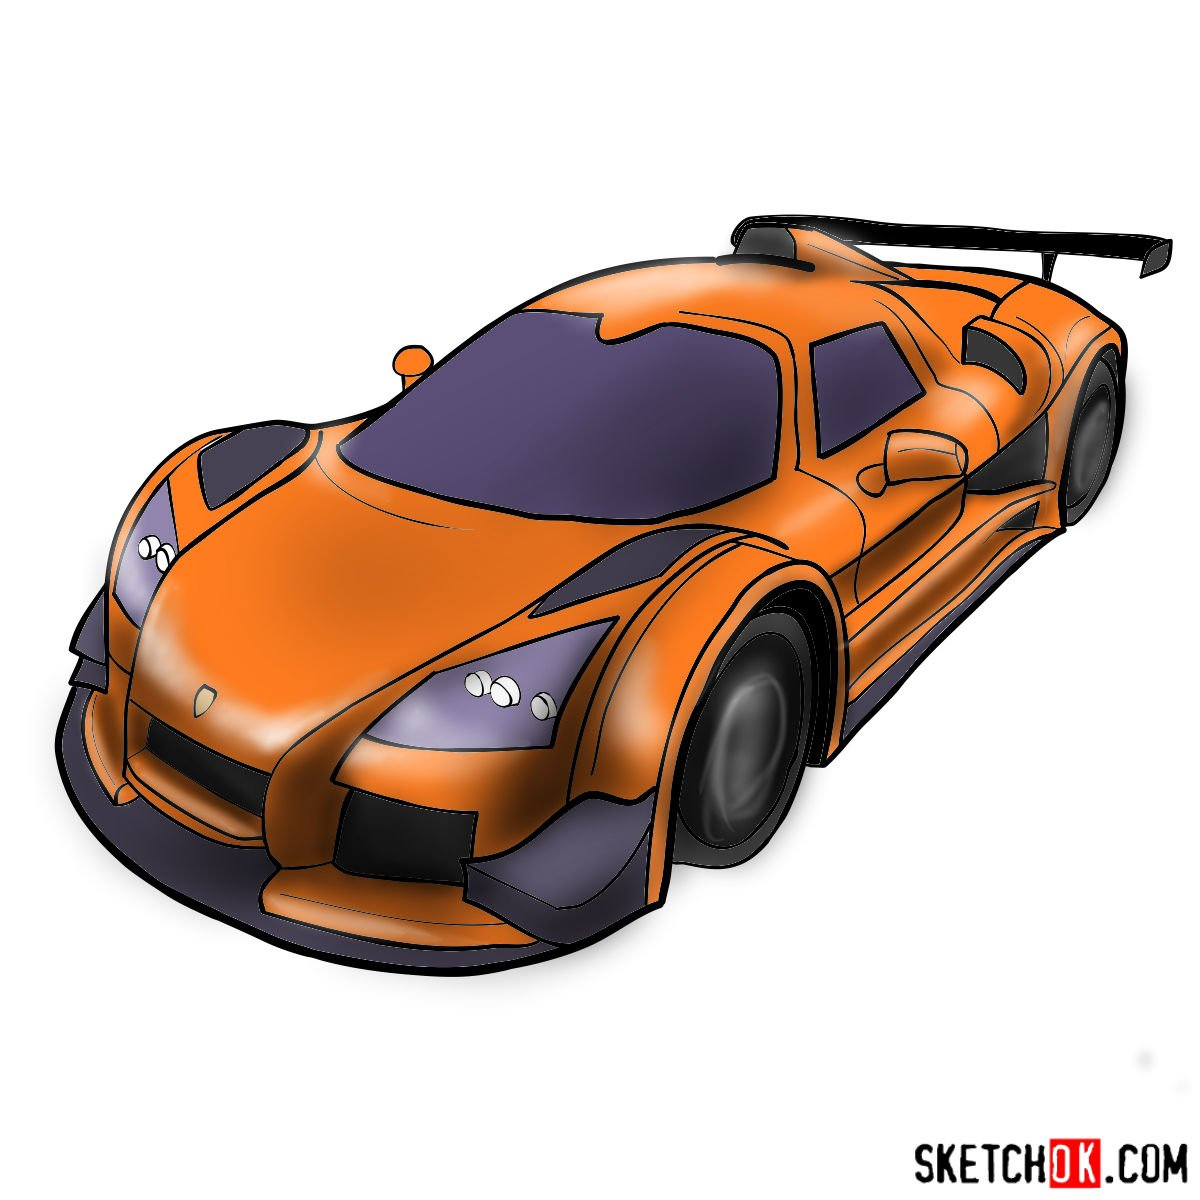 How to draw Gumpert Apolo Sport 2012